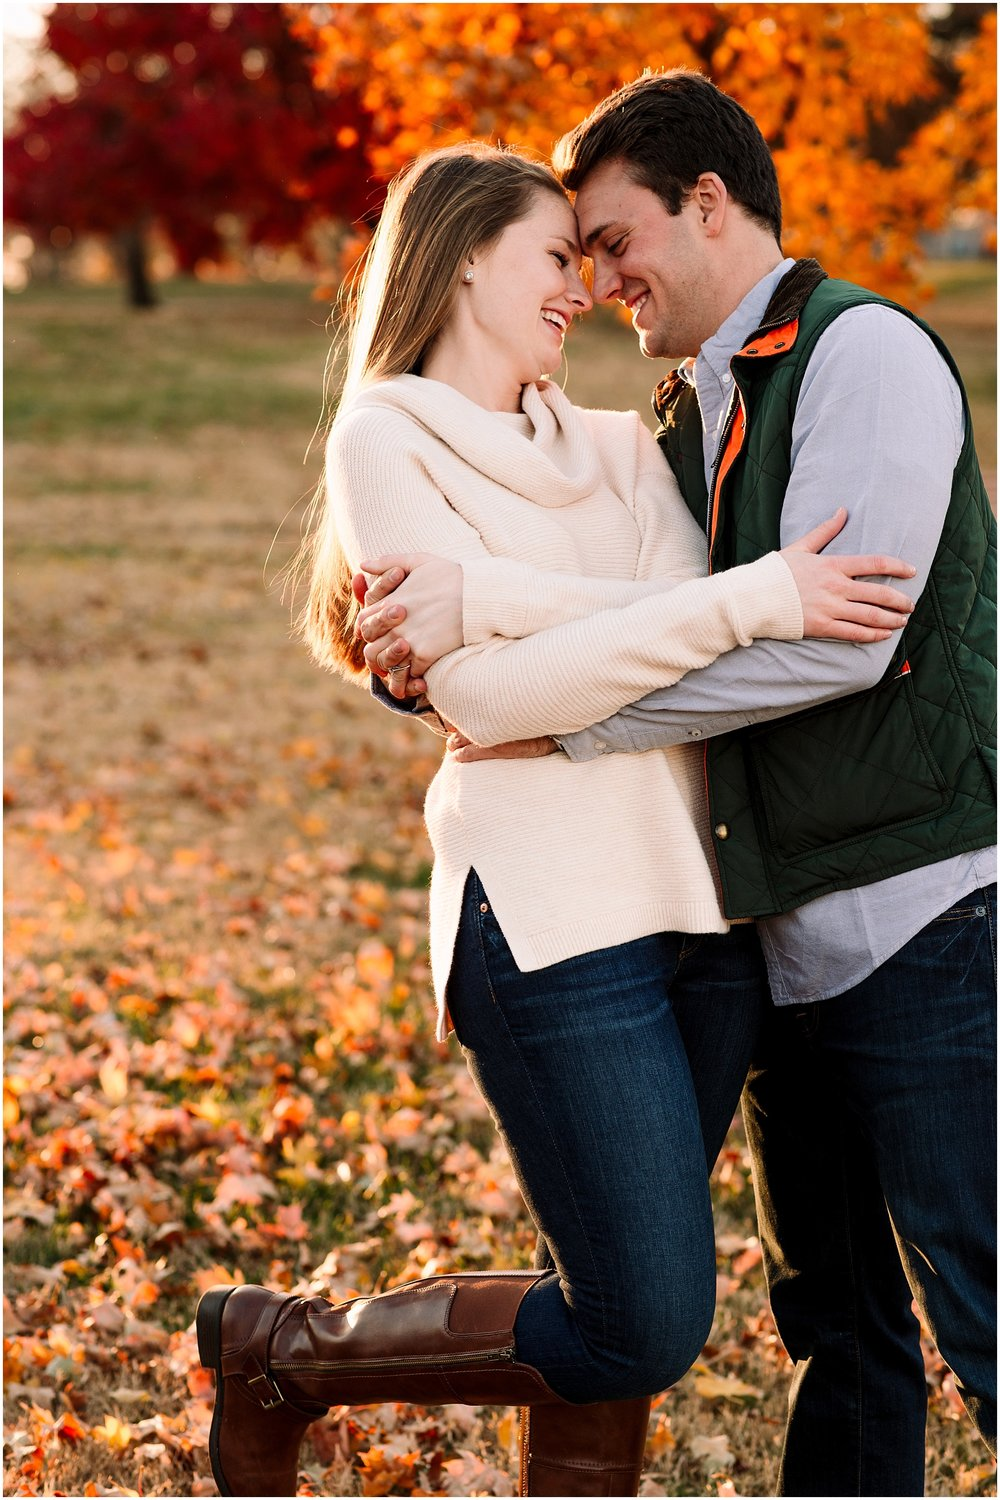 Hannah Leigh Photography Baltimore Engagement Session MD_6975.jpg